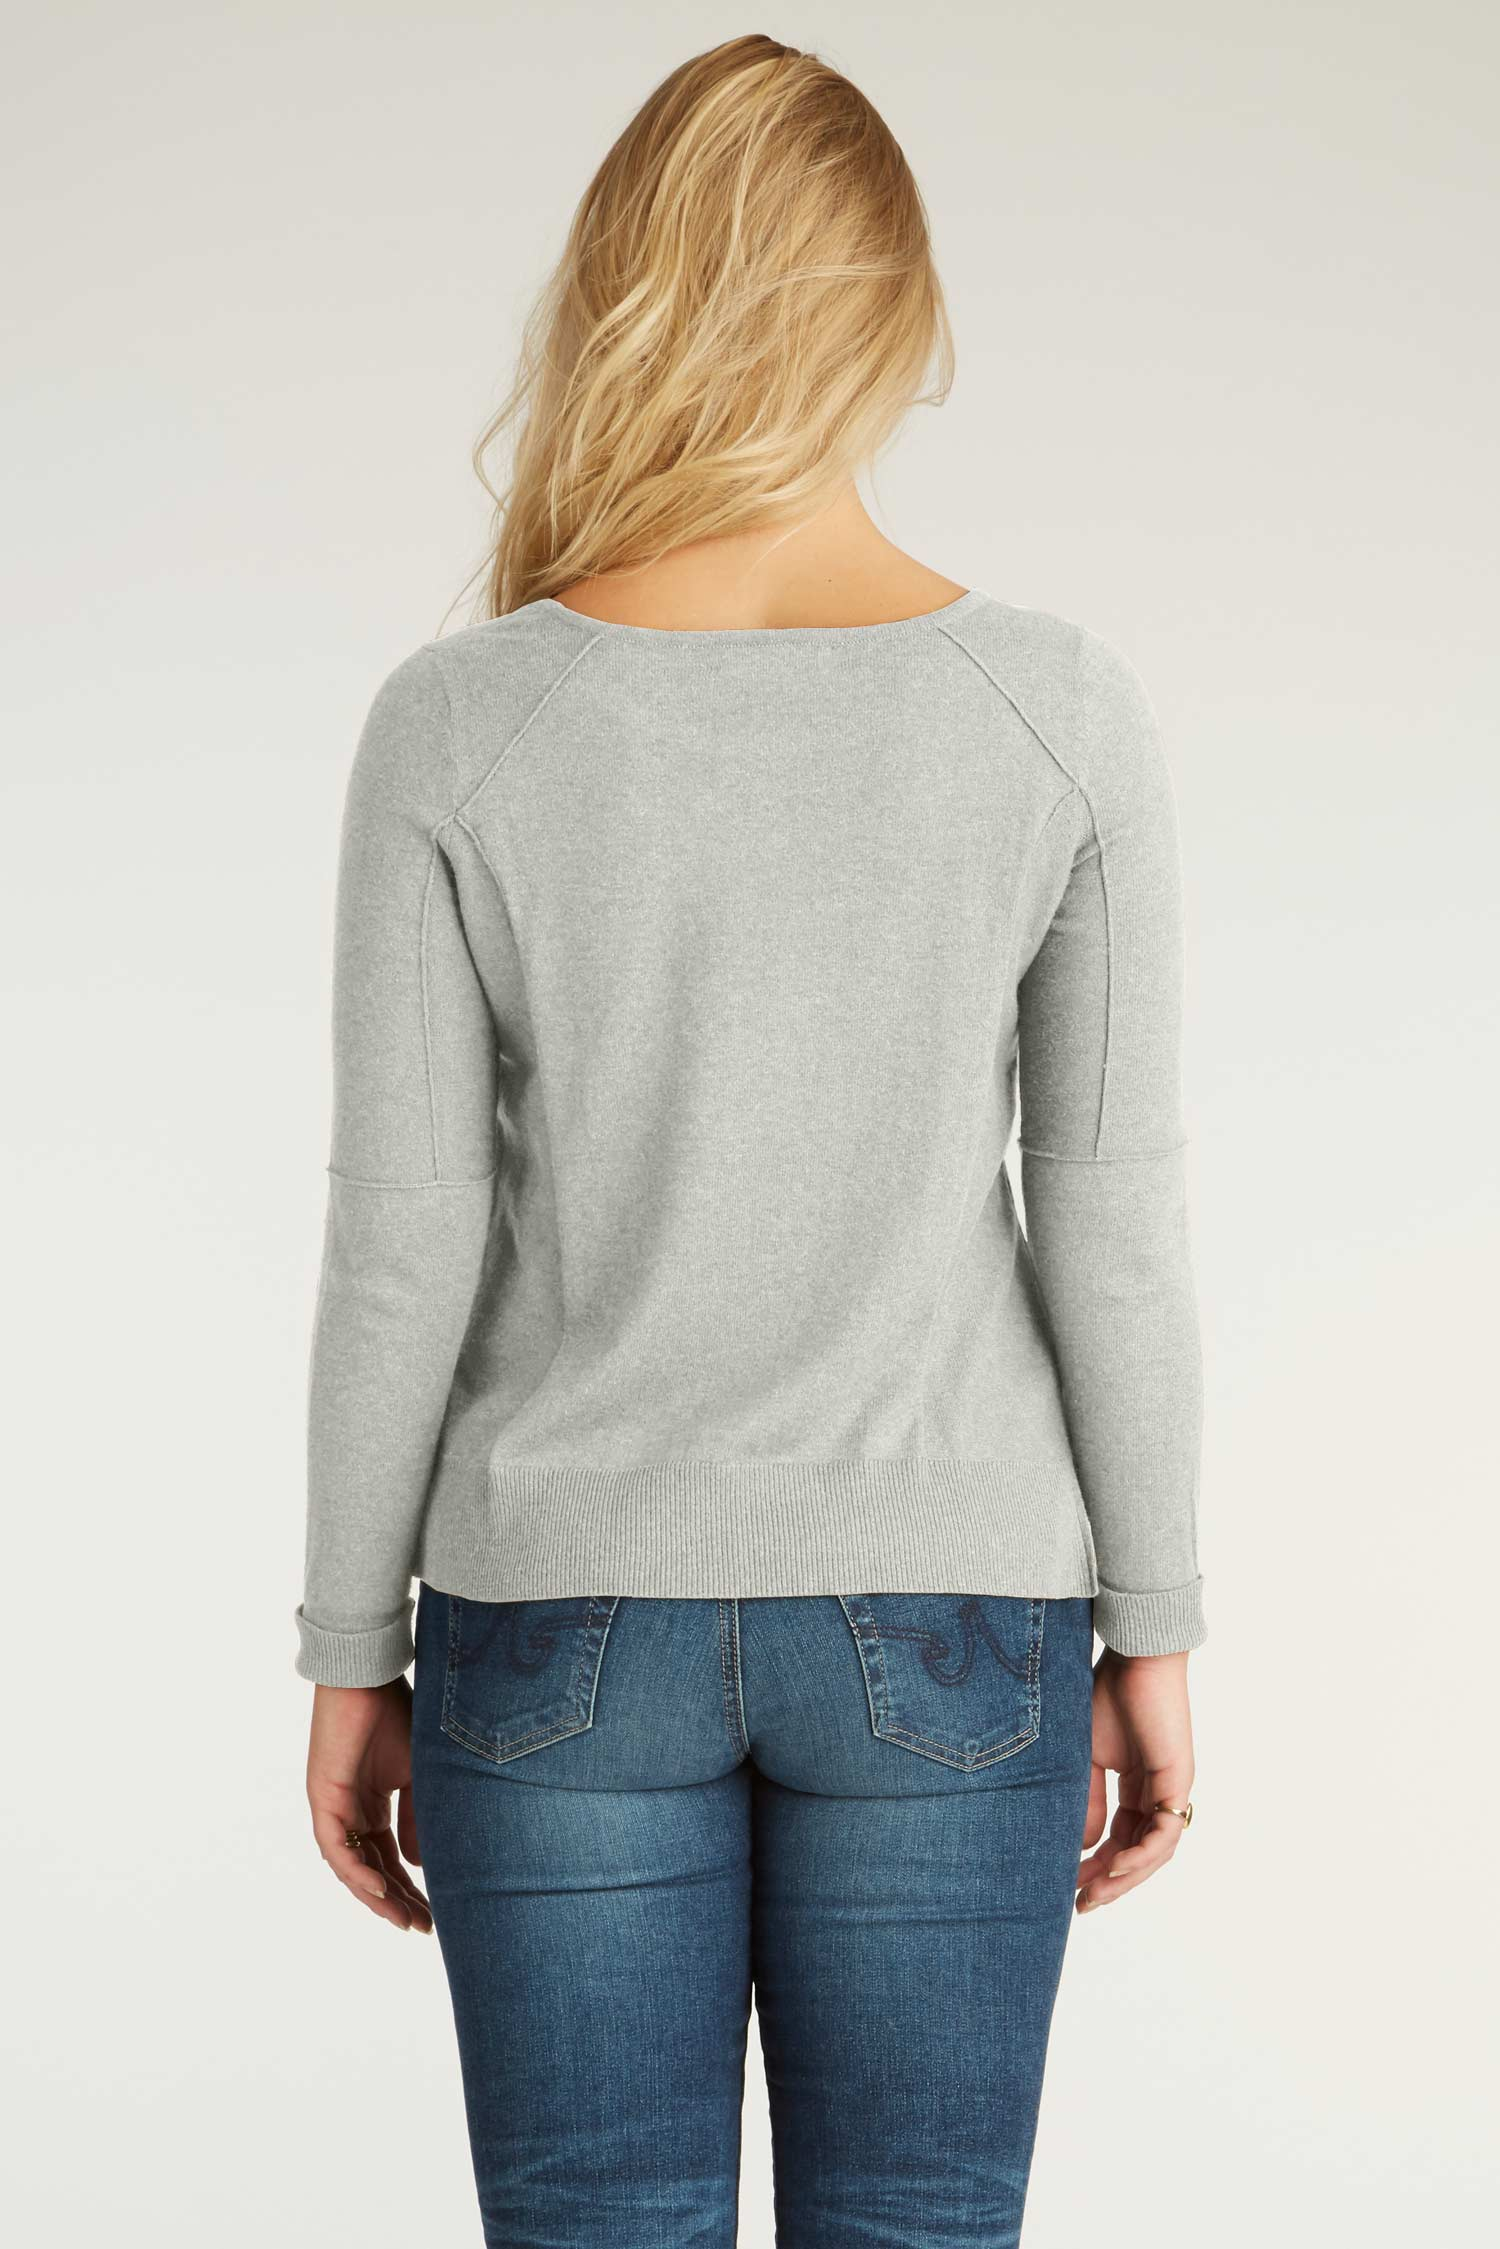 Womens Organic Cotton Sweater - Cropped Knit Pullover - Gray - Indigenous